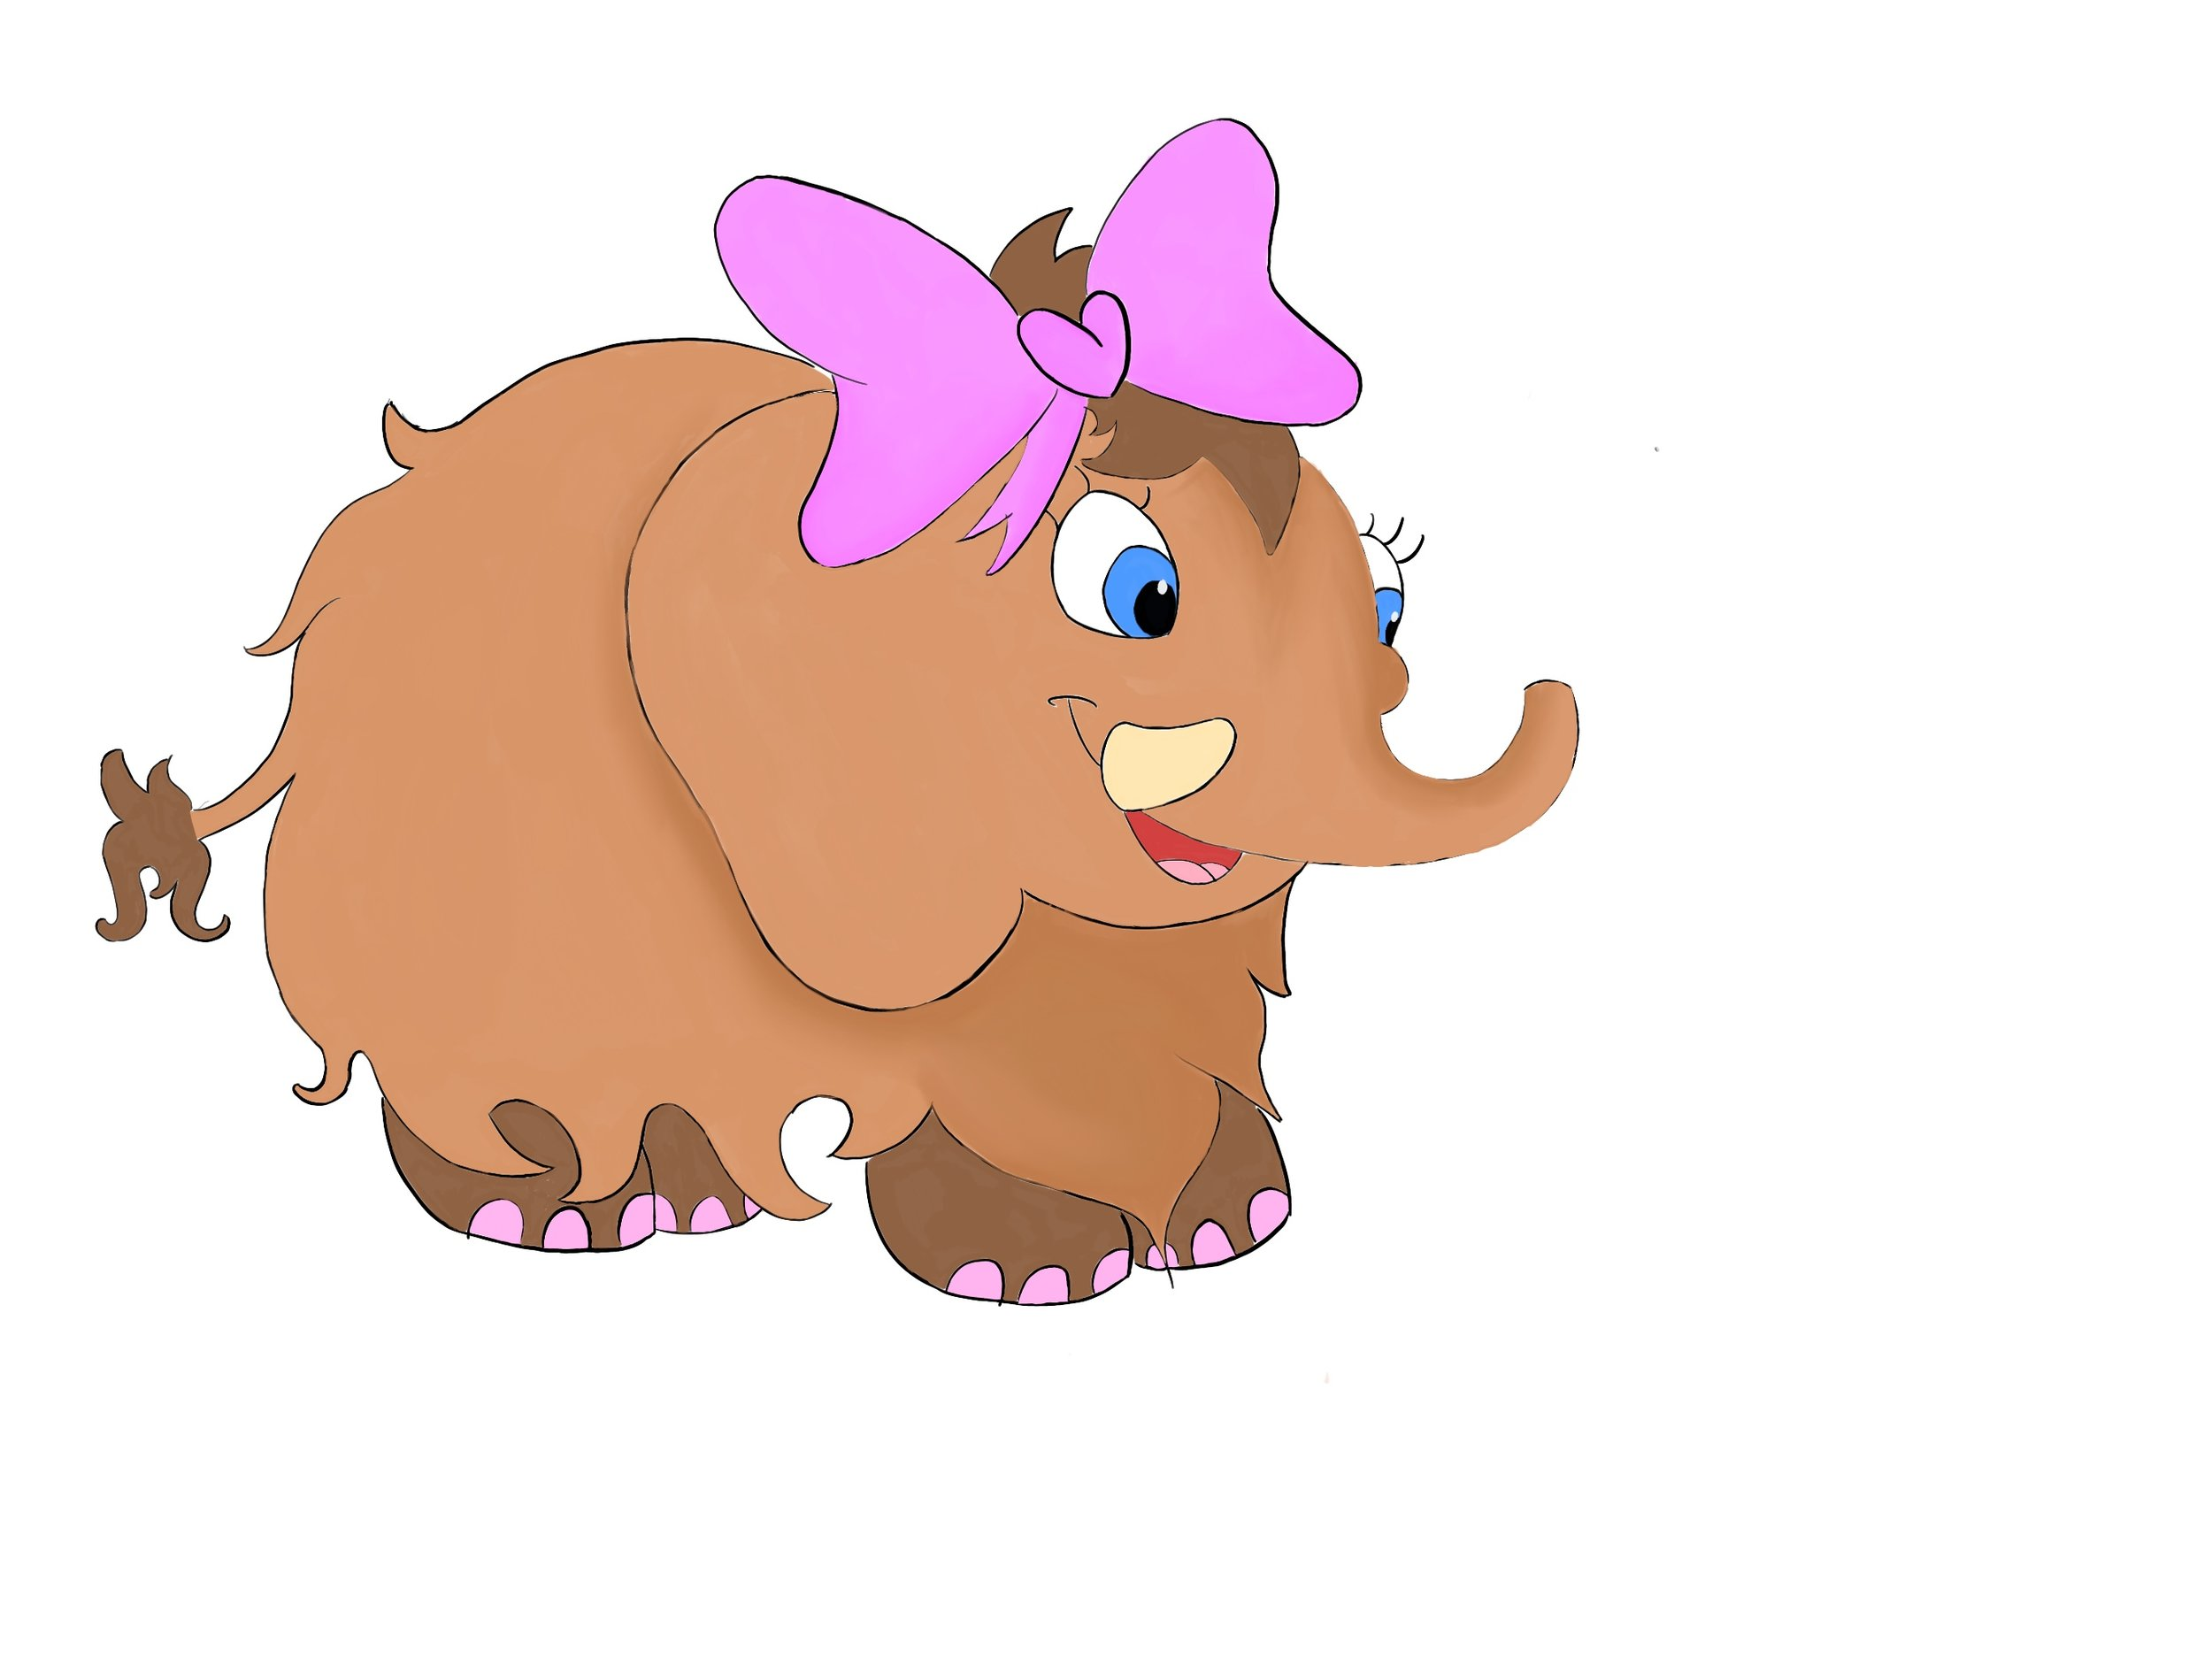 Heidi the Mammoth - Heidi is Herbie's neighbor. She's often shy but she's a great listener and has a beautiful singing voice!